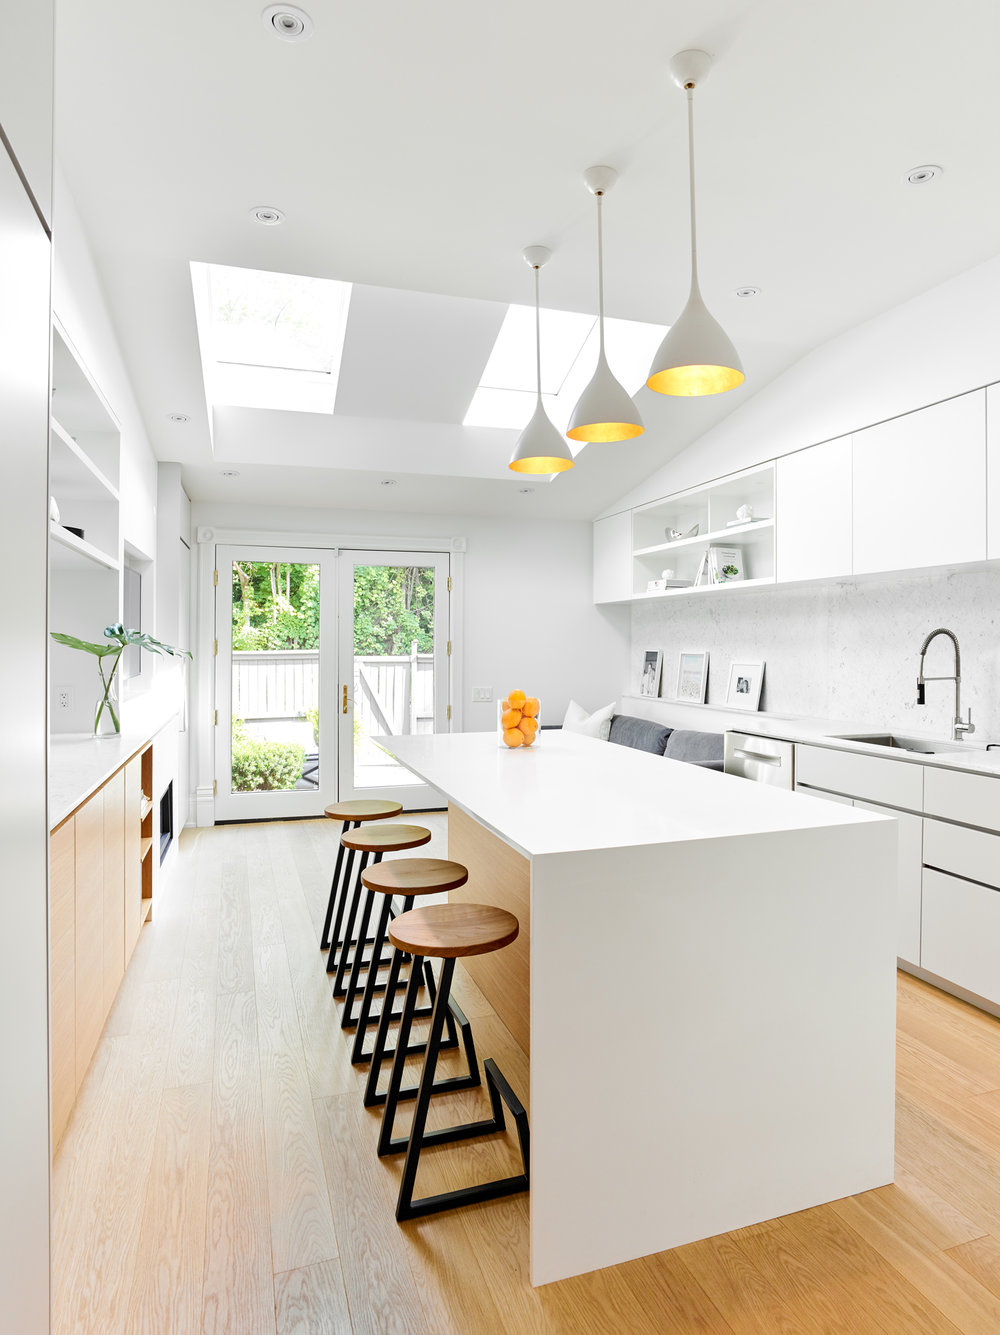 Skylights-and-doors-bring-light-into-the-kitchen-85365